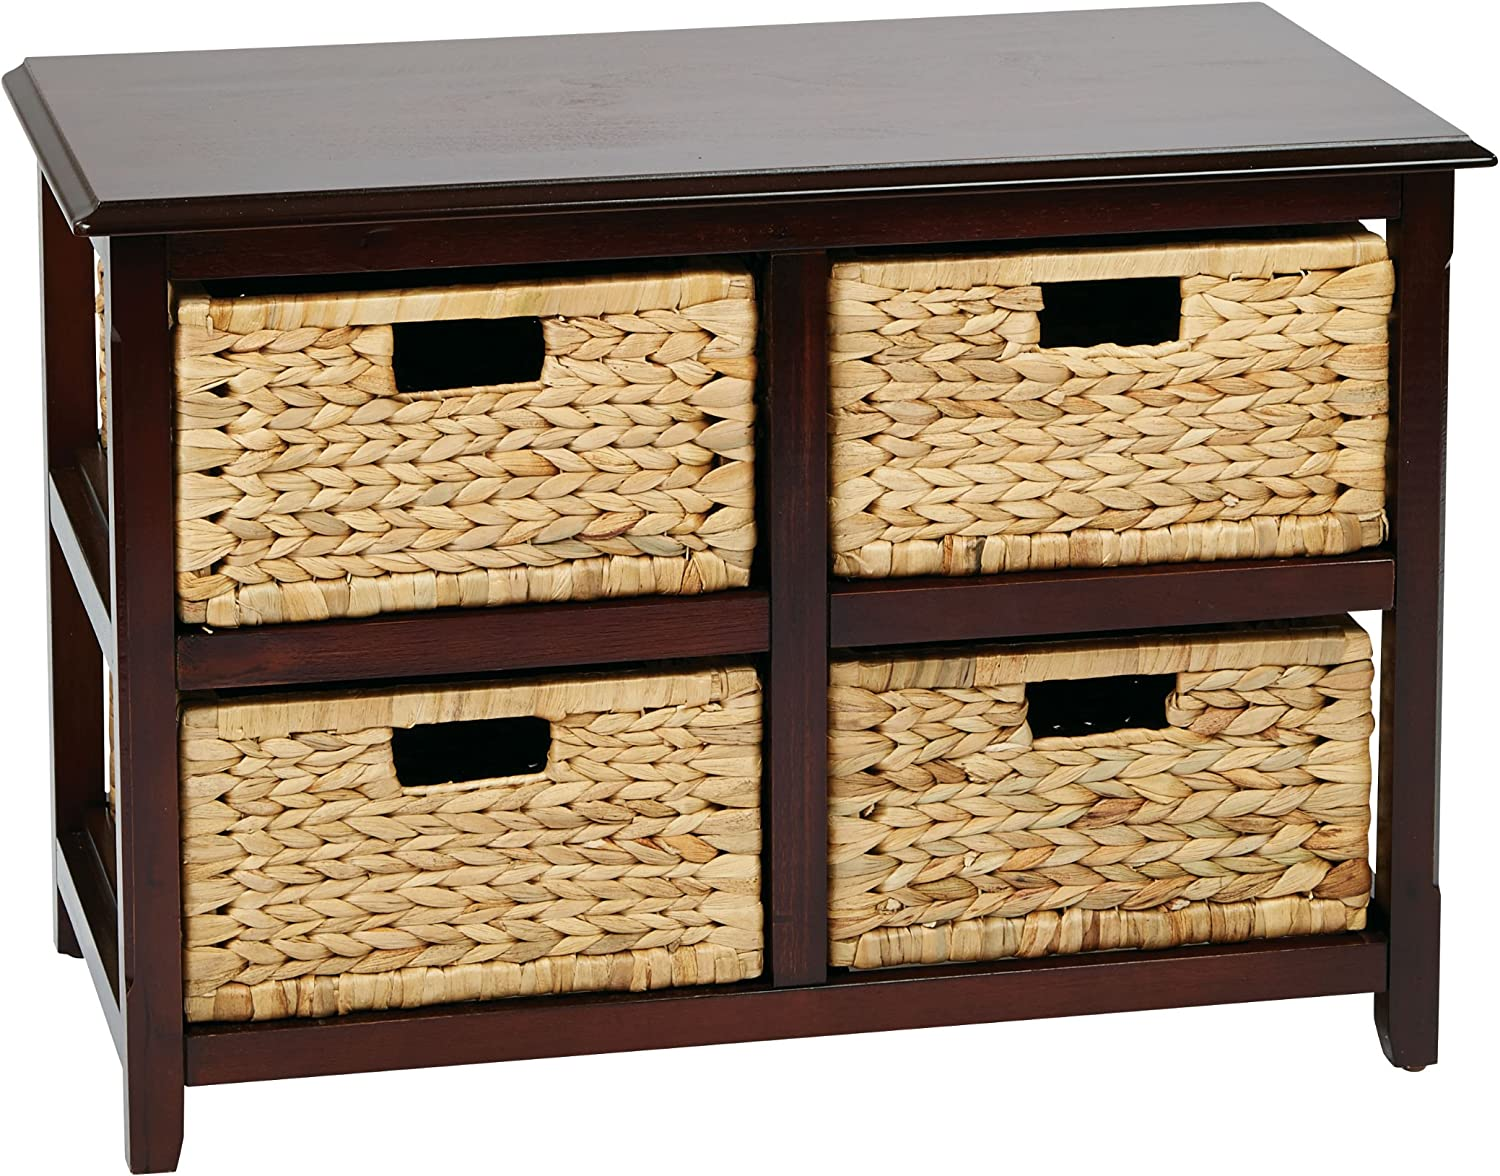 OSP Home Furnishings Seabrook 2-Tier, 4-Drawer Storage Unit with Natural Baskets, Espresso